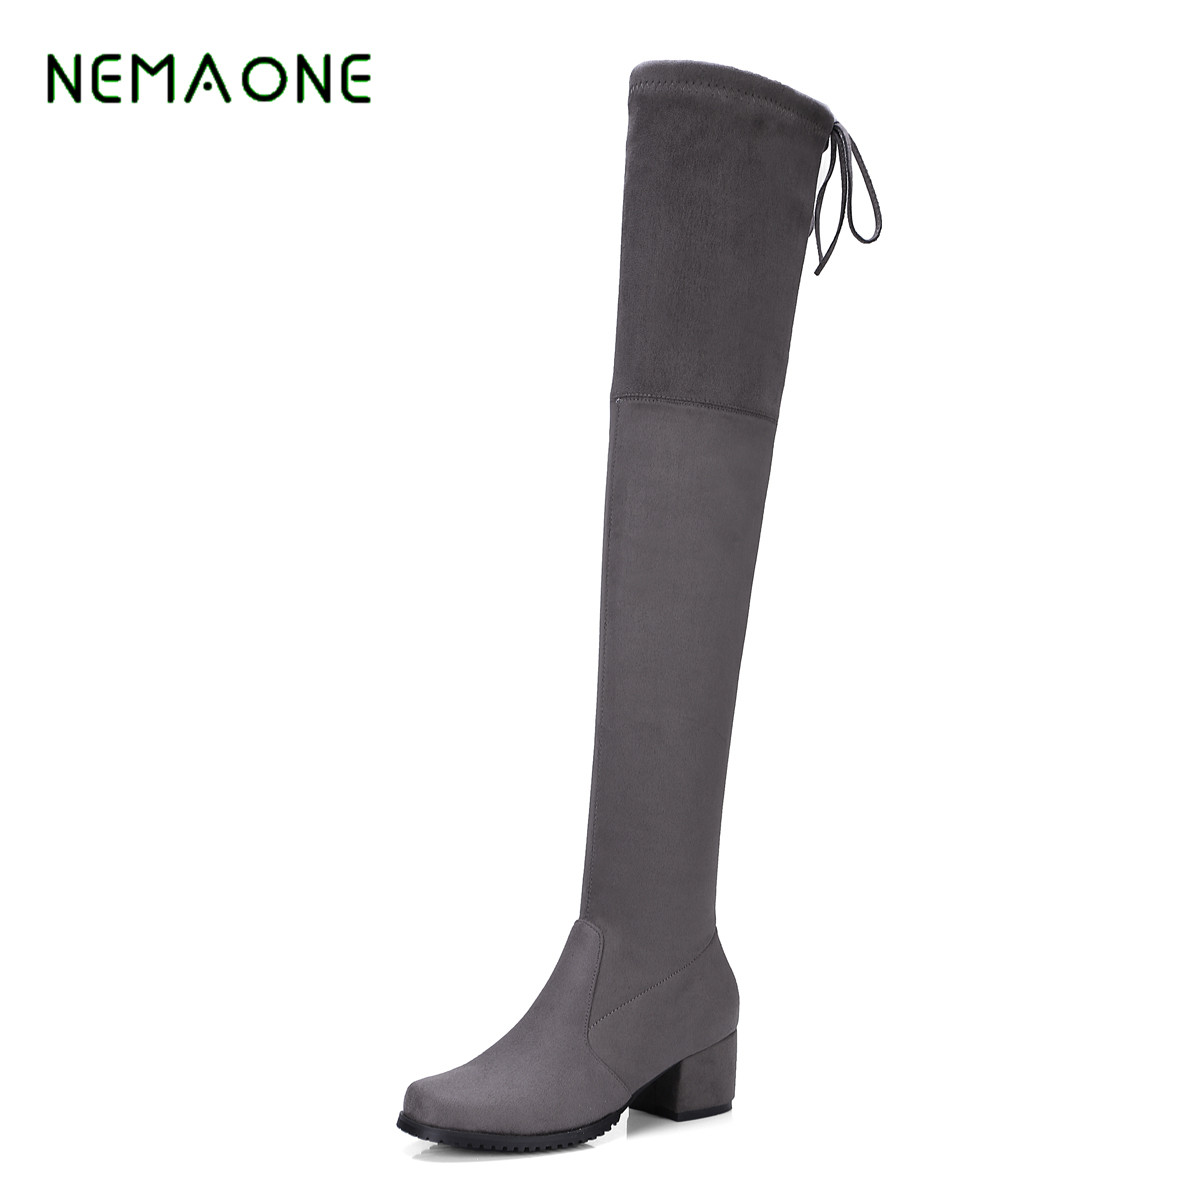 NEMAONE 2017 Shoes Autumn Winter Over The Knee Boots fashion Heels Shoes Women Boots Designer Sexy Thigh High Boos yougolun women nubuck thigh high boots ladies autumn winter boots woman over the knee boots women 2017 square high heels shoes